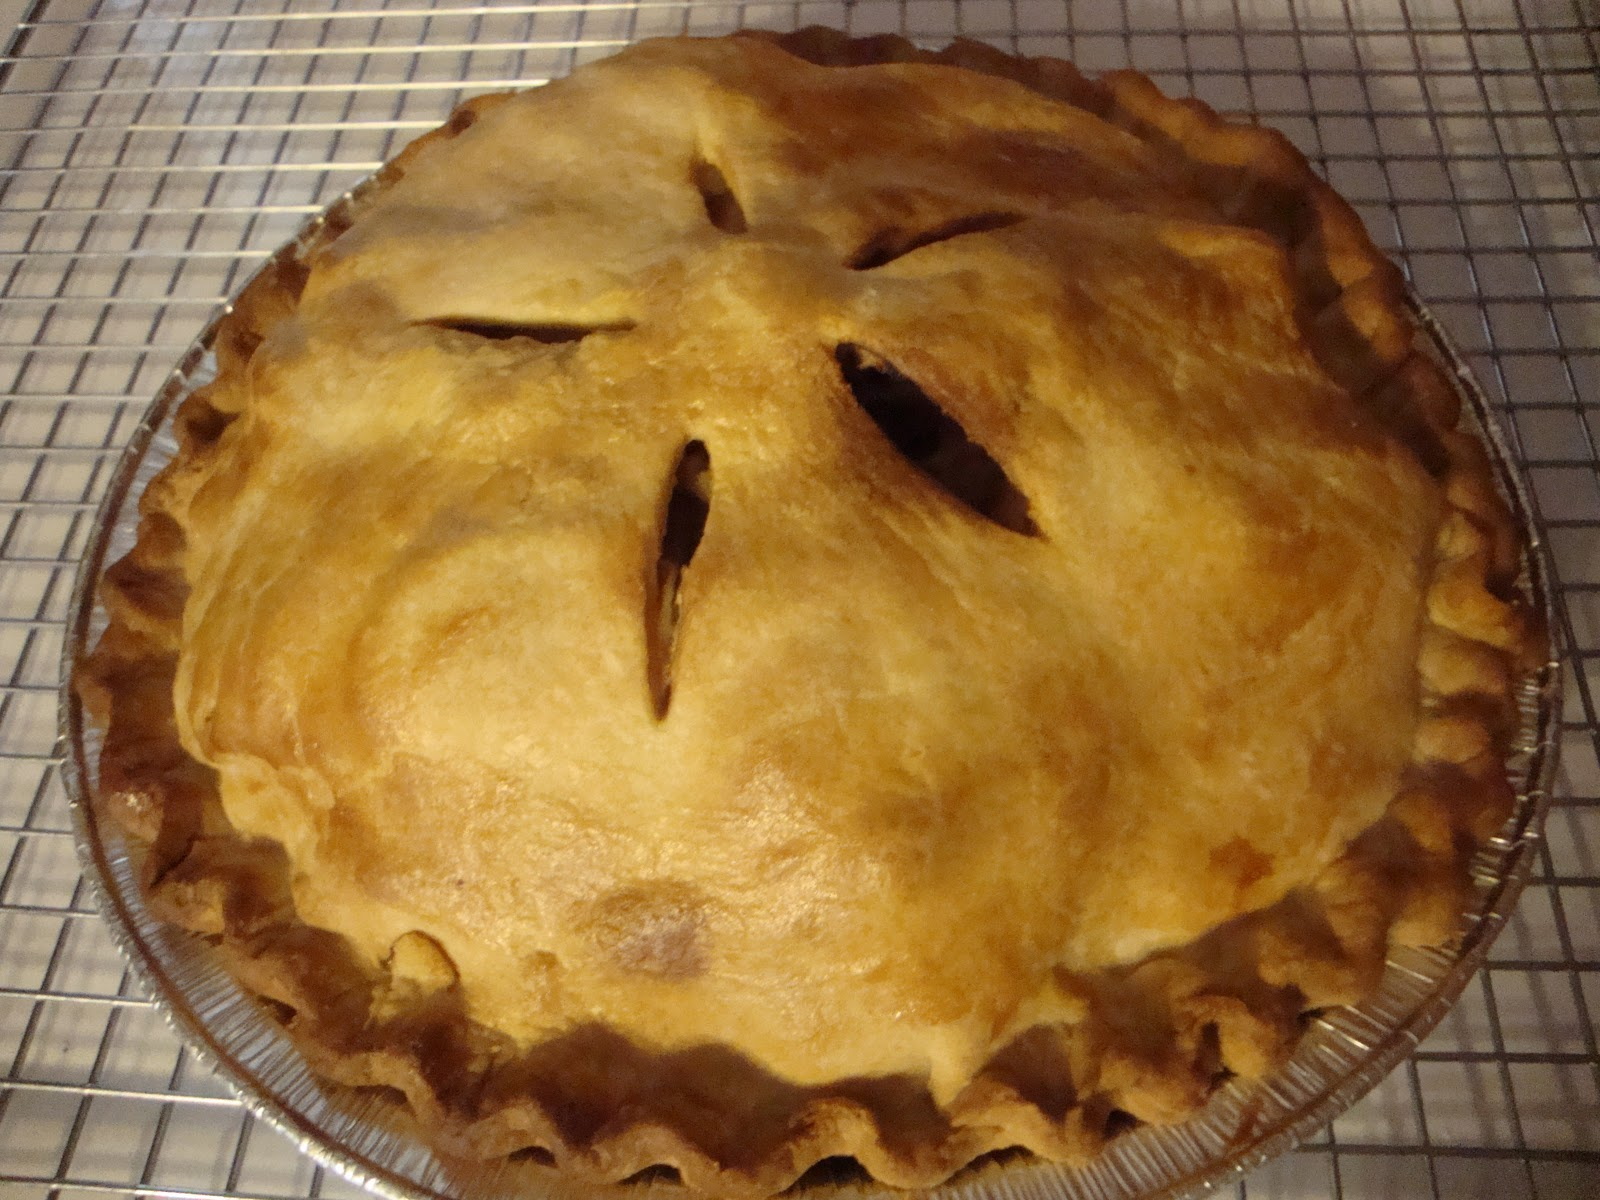 Breaking bread with Lisa: Old fashion apple pie